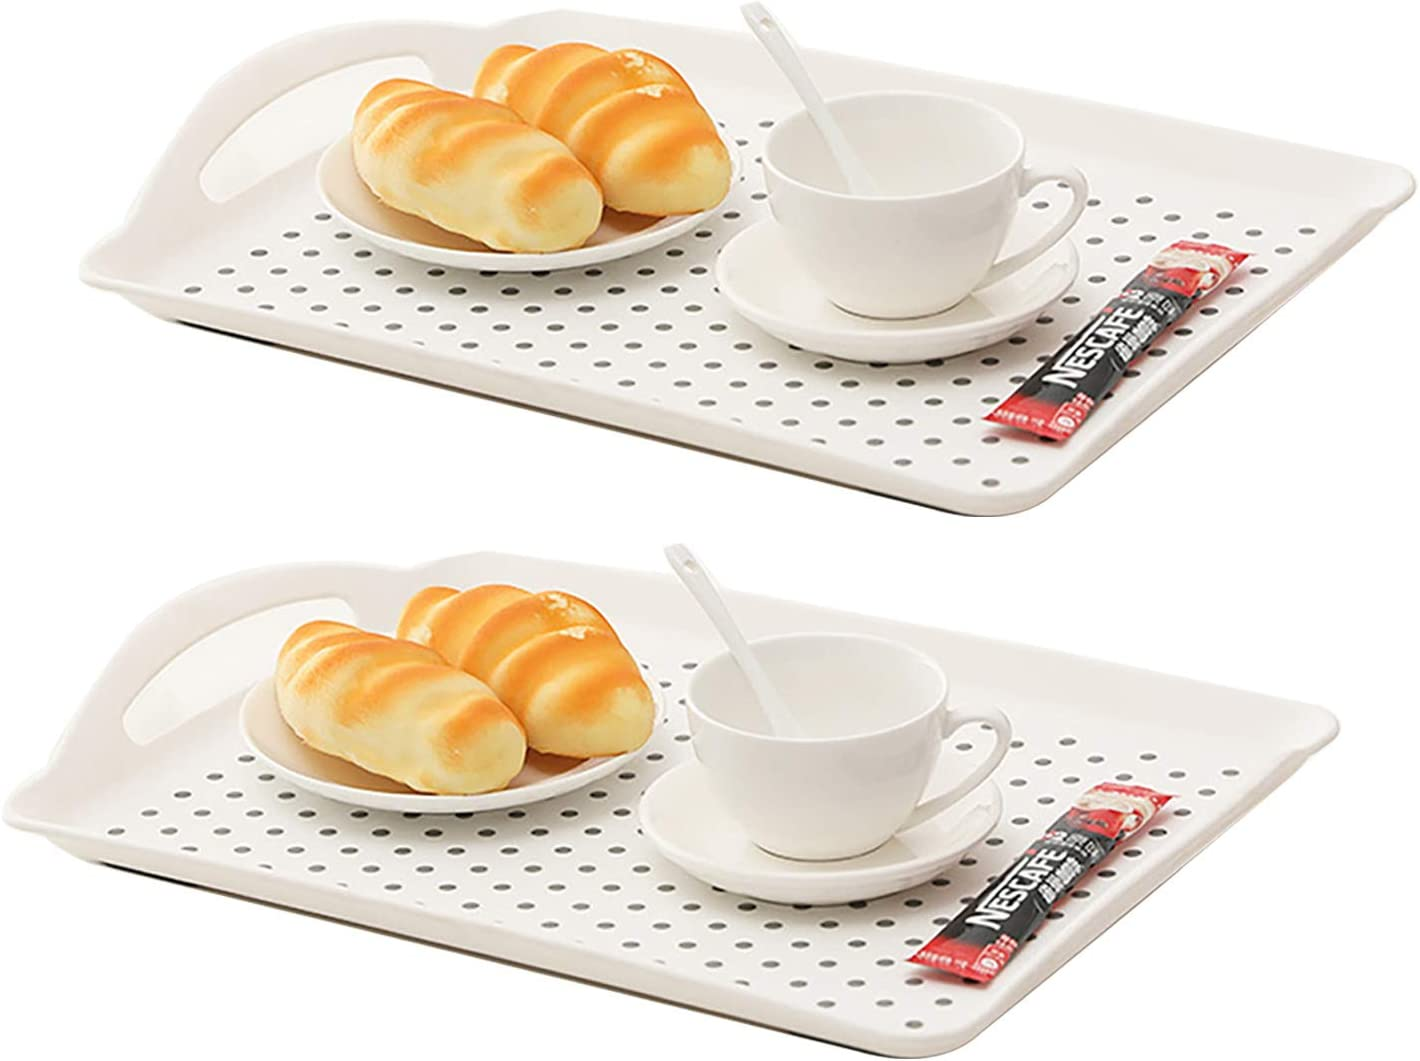 2Pcs Rectangle Anti-Slip Food Serving Tray with Handles, Non Skid Multipurpose Tray for Breakfast Food Drink Trays